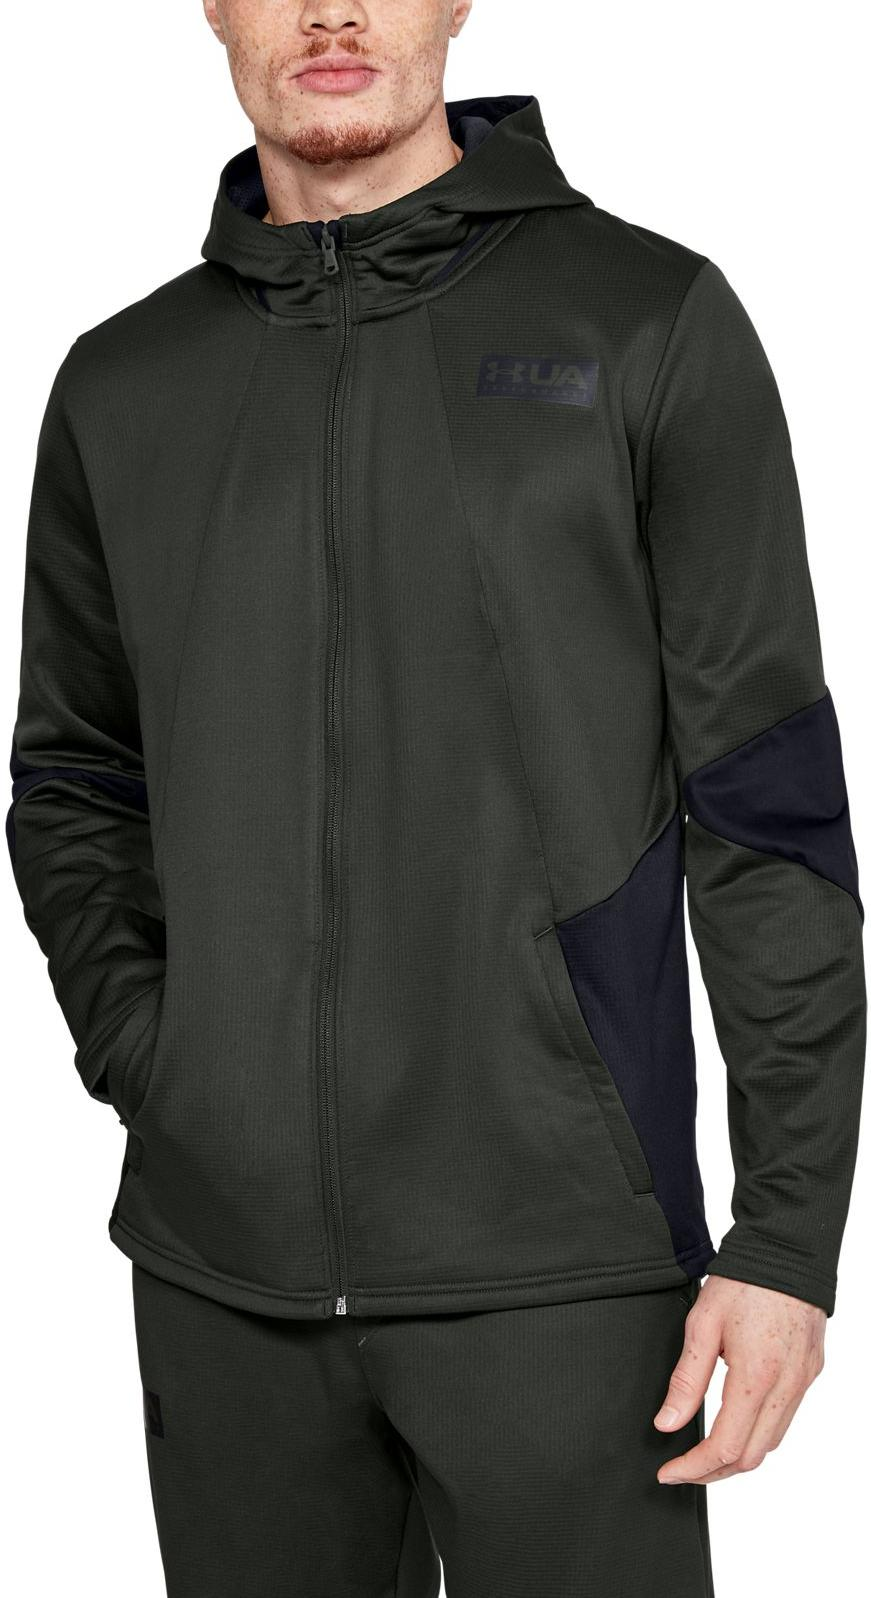 Trenirka s kapuljačom Under Armour Gametime Fleece FZ